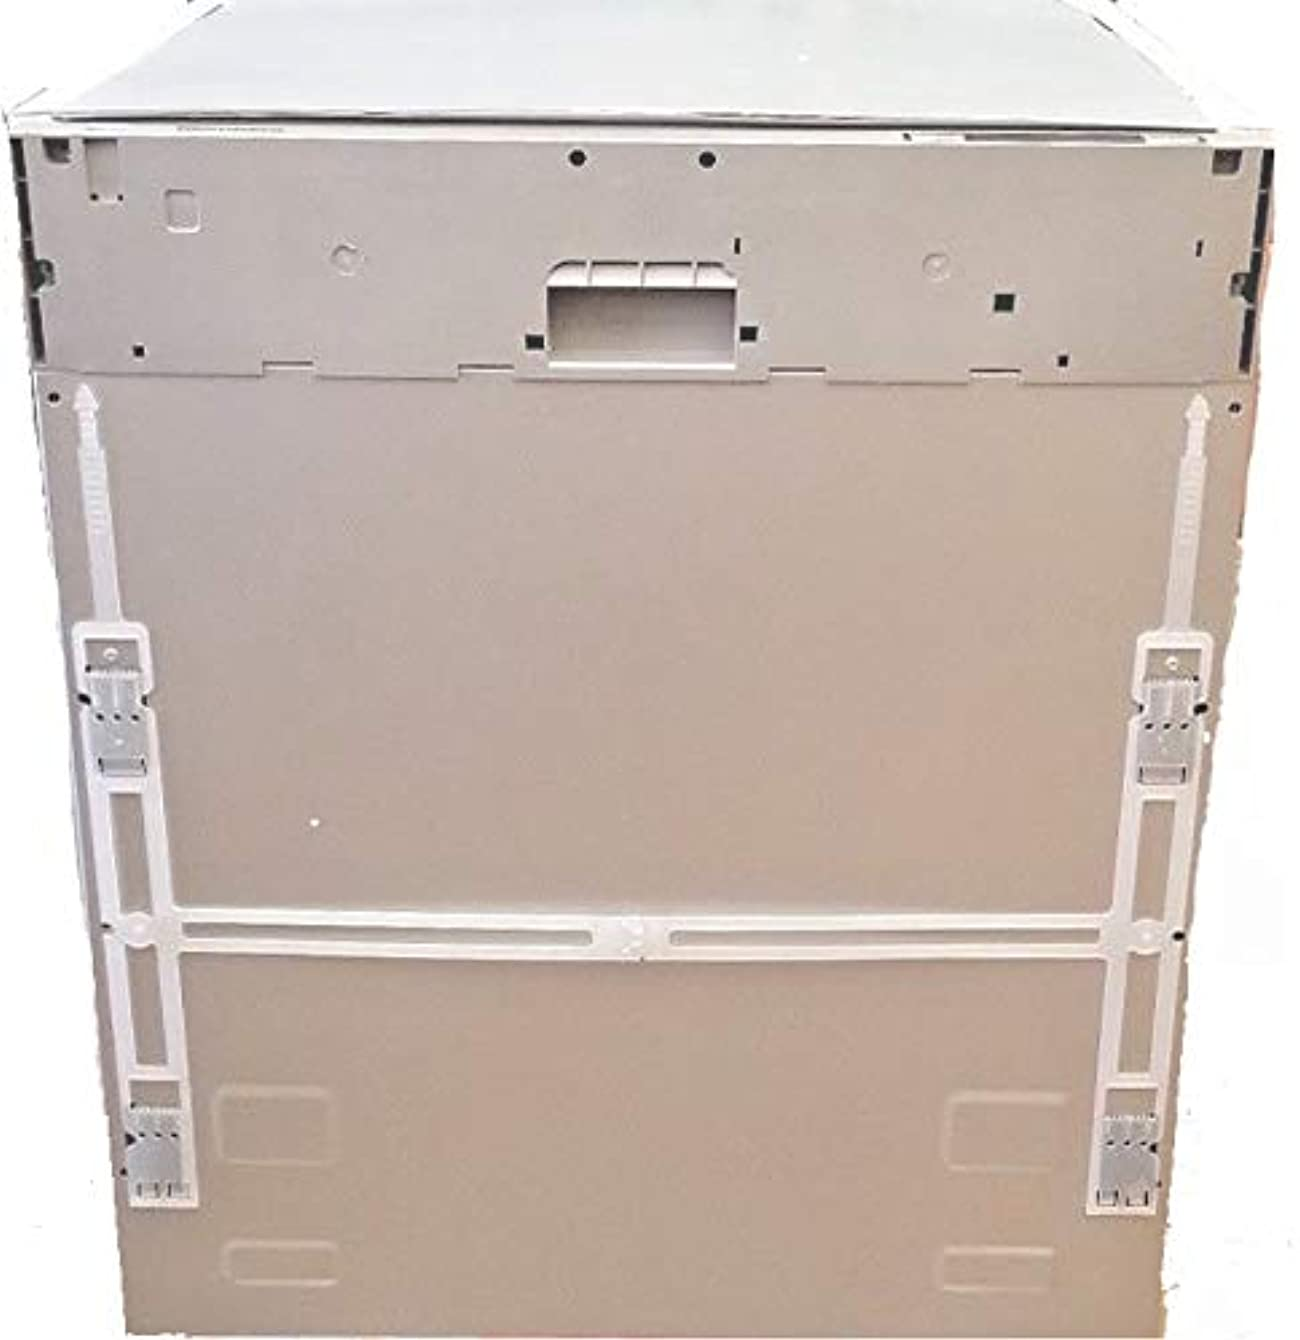 Blomberg DWT 54100 FBI Fully Built In Dishwasher Top Control DWT54100FBI